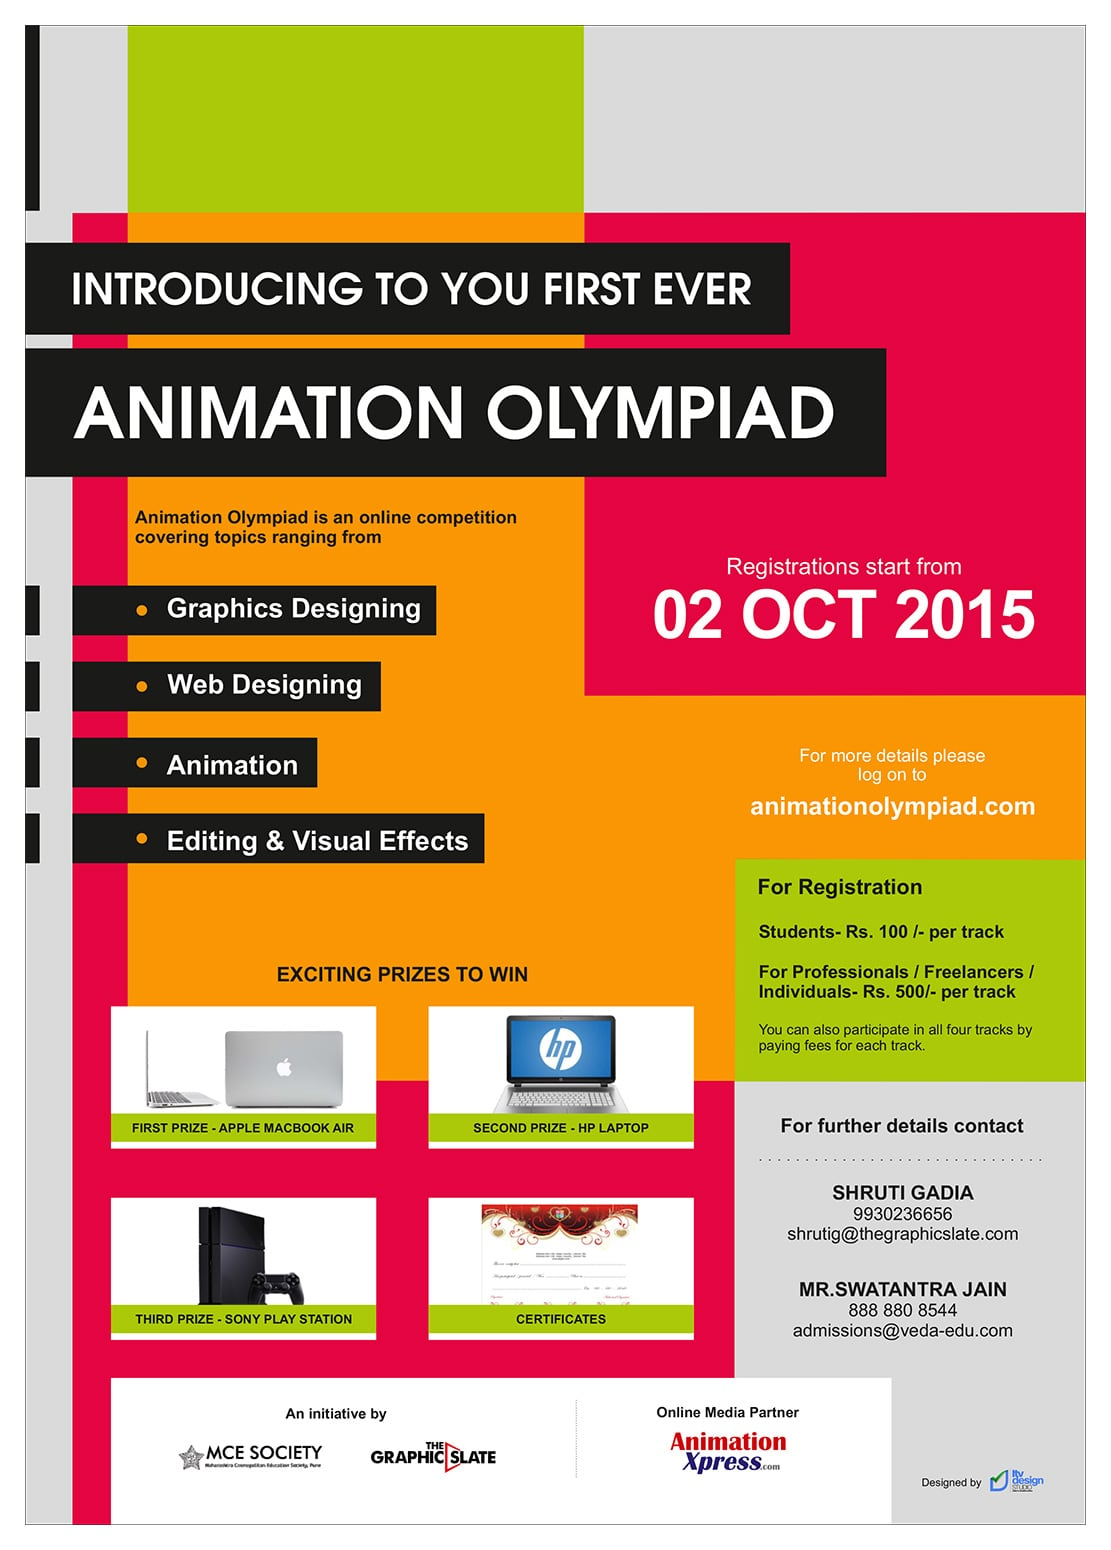 Animation Olympiad Competition 2015